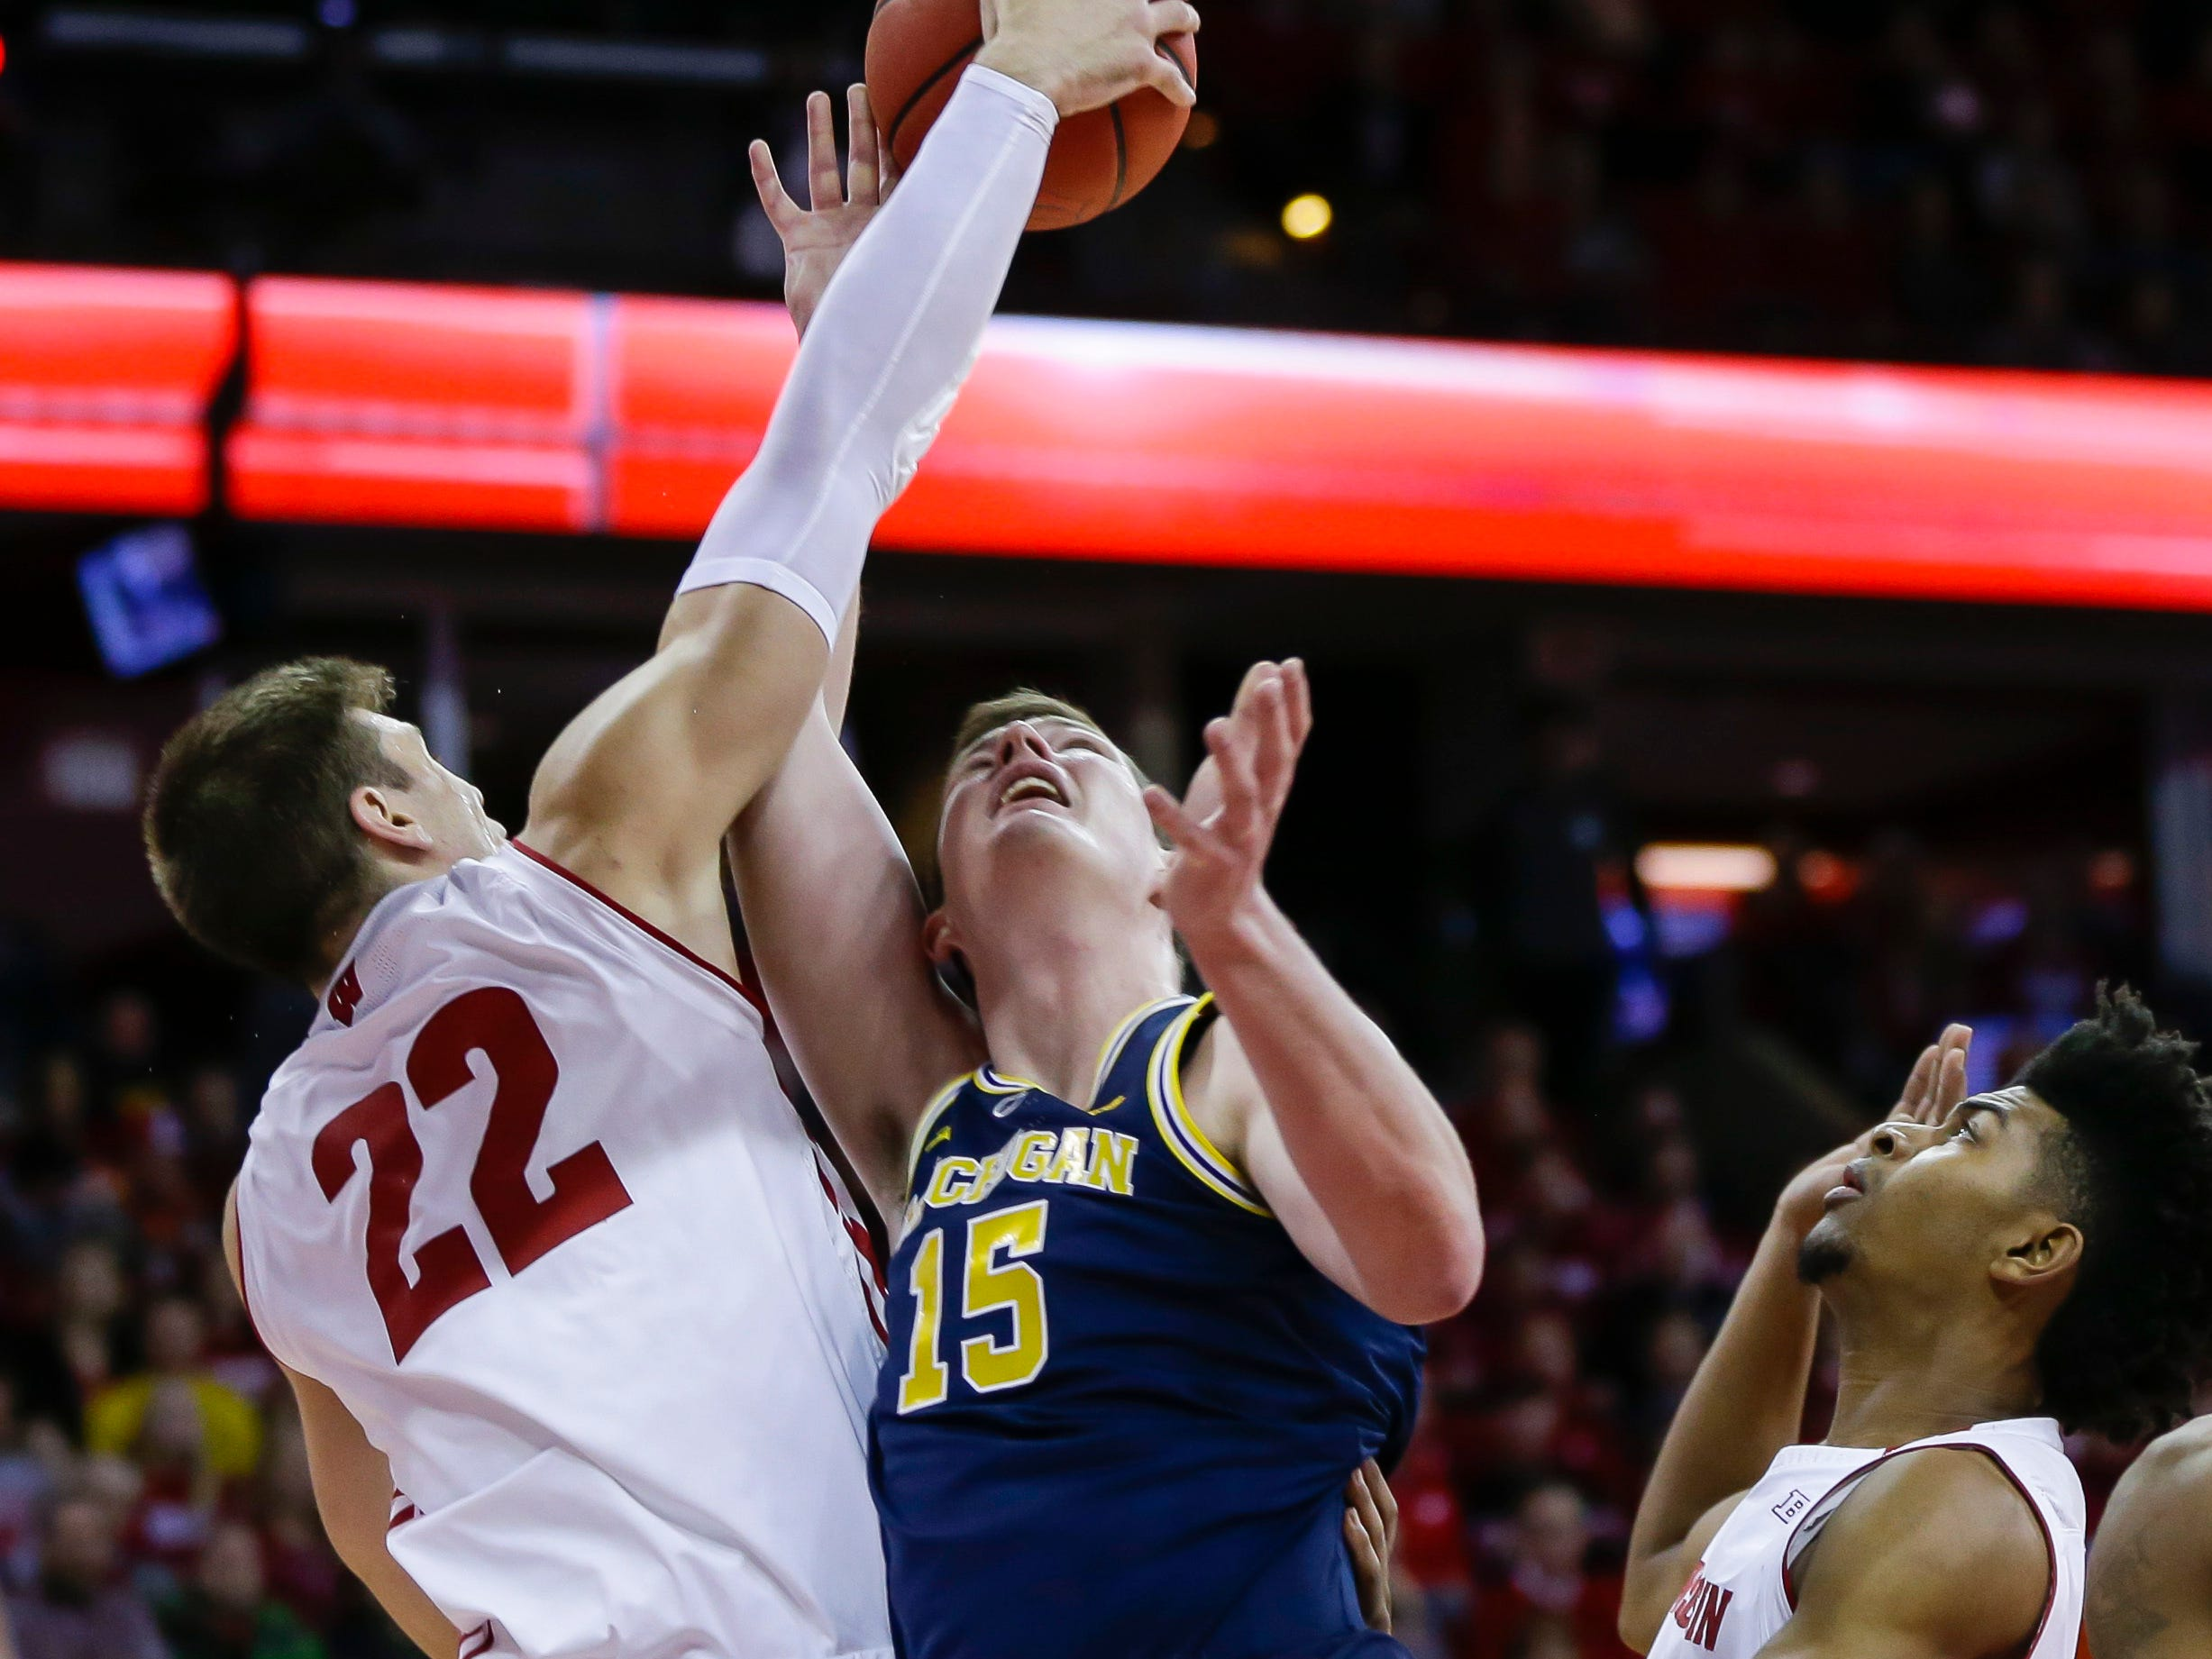 Wisconsin's Ethan Happ and Michigan's Jon Teske battle for a rebound during the first half Saturday, Jan. 19, 2019, in Madison, Wis.